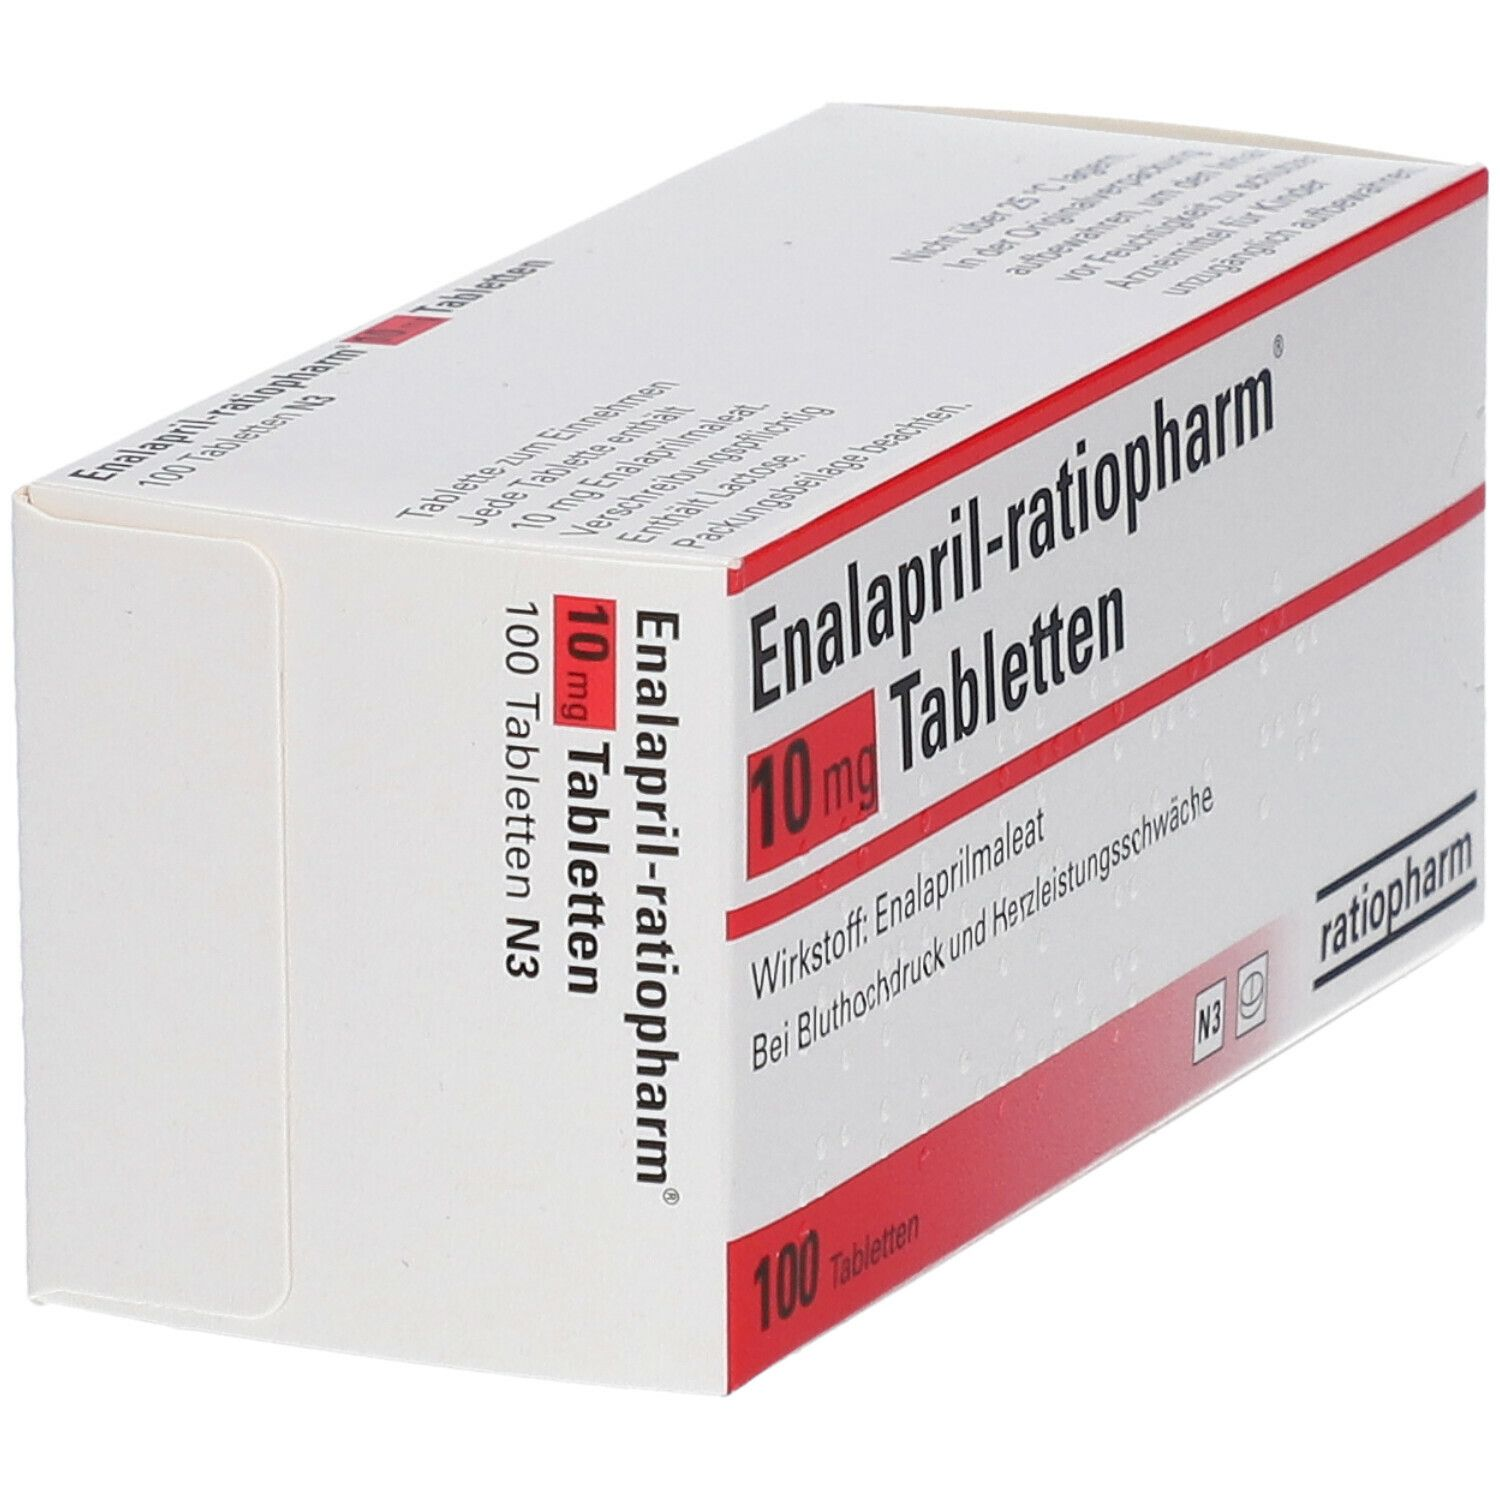 Enalapril ratiopharm® 10 mg Tabletten